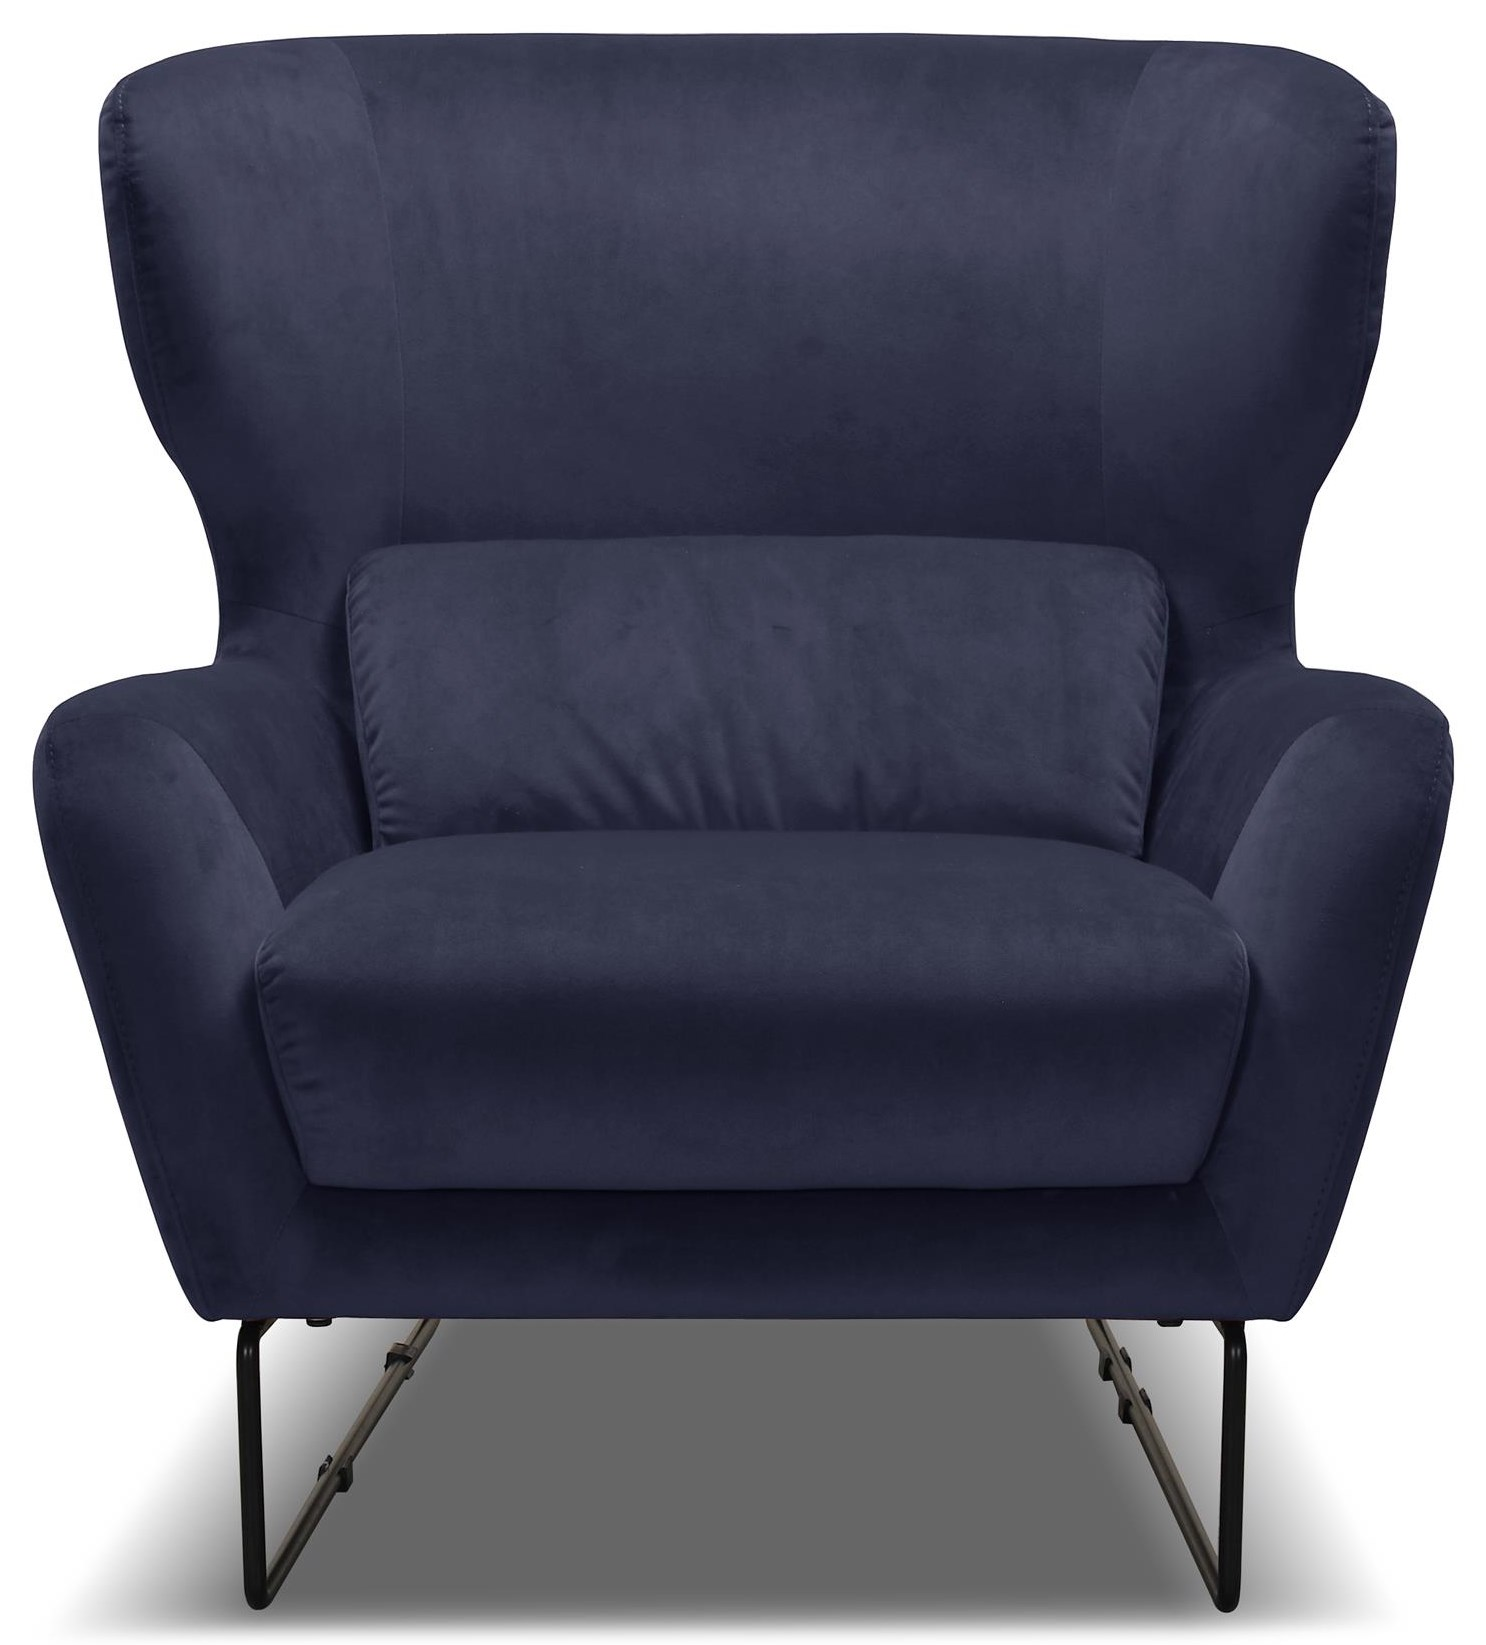 1140 Navy Blue Contemporary Velvet Chair by Violino at O'Dunk & O'Bright Furniture